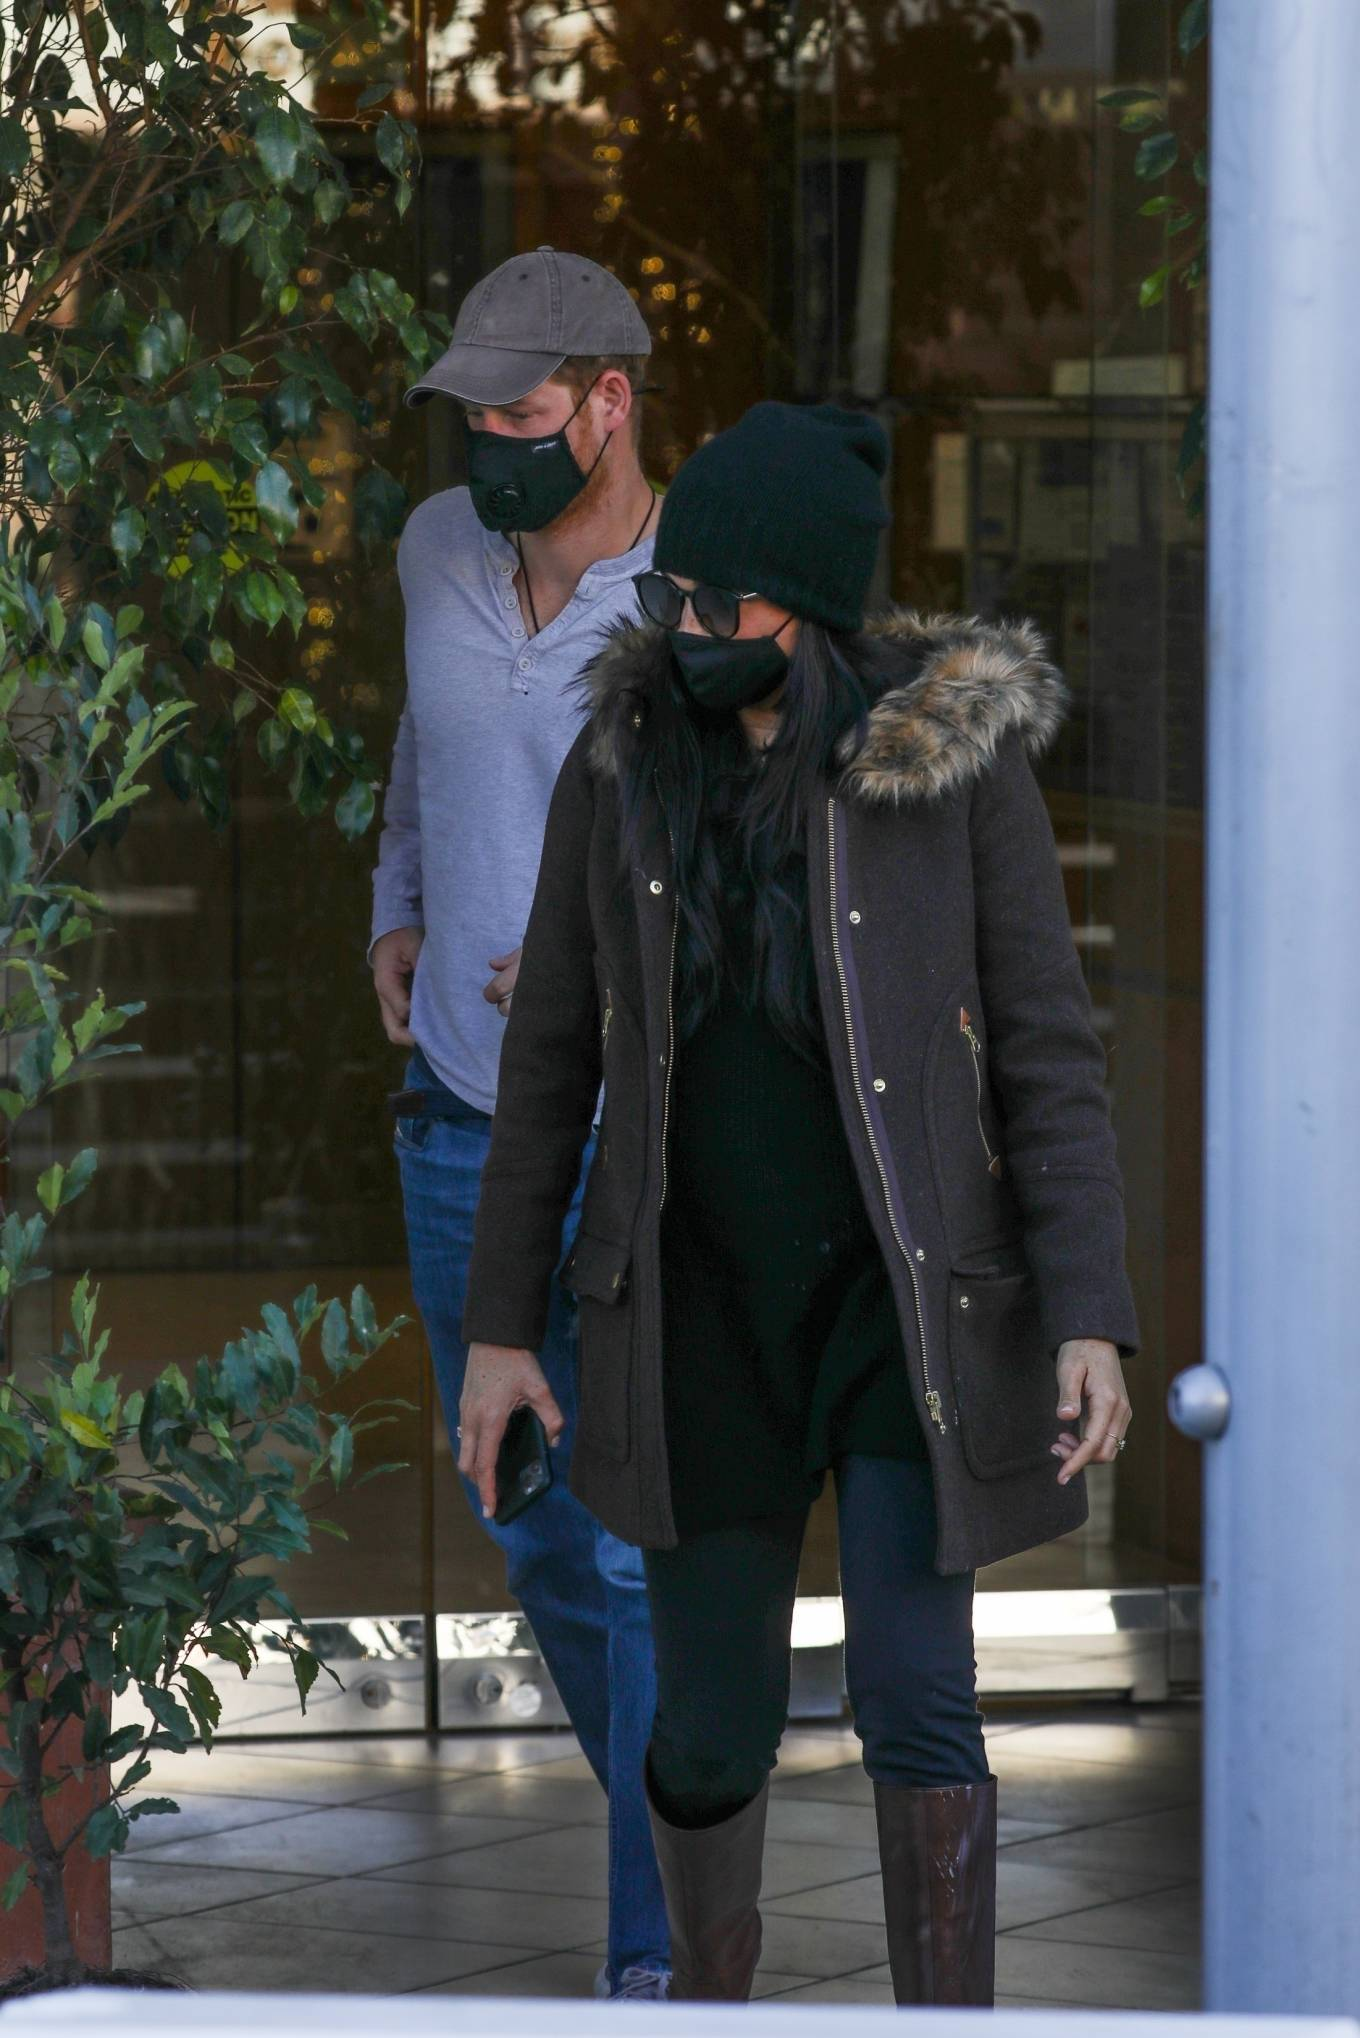 Meghan Markle - With Prince Harry spotted together in Beverly Hills